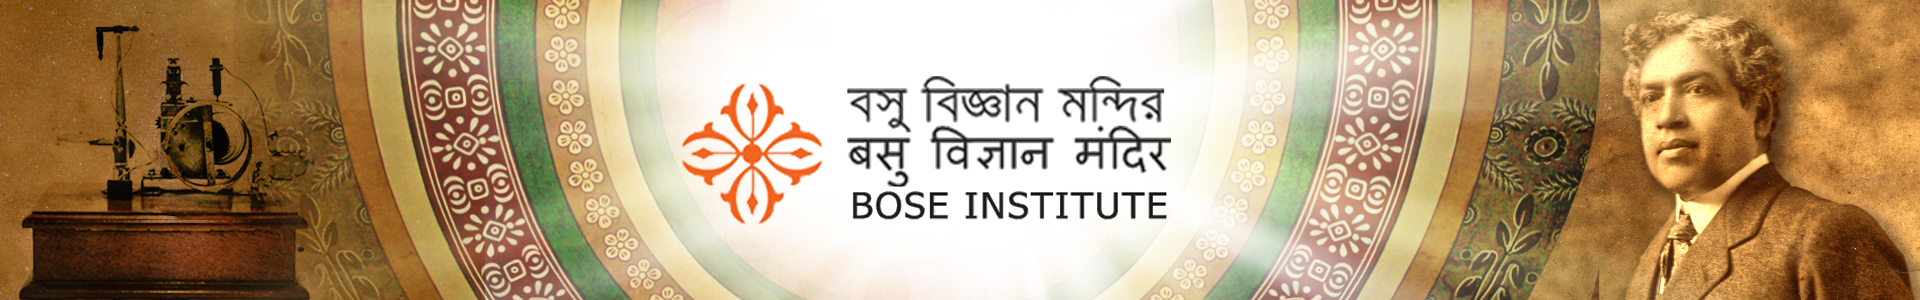 Logo of Bose Institute